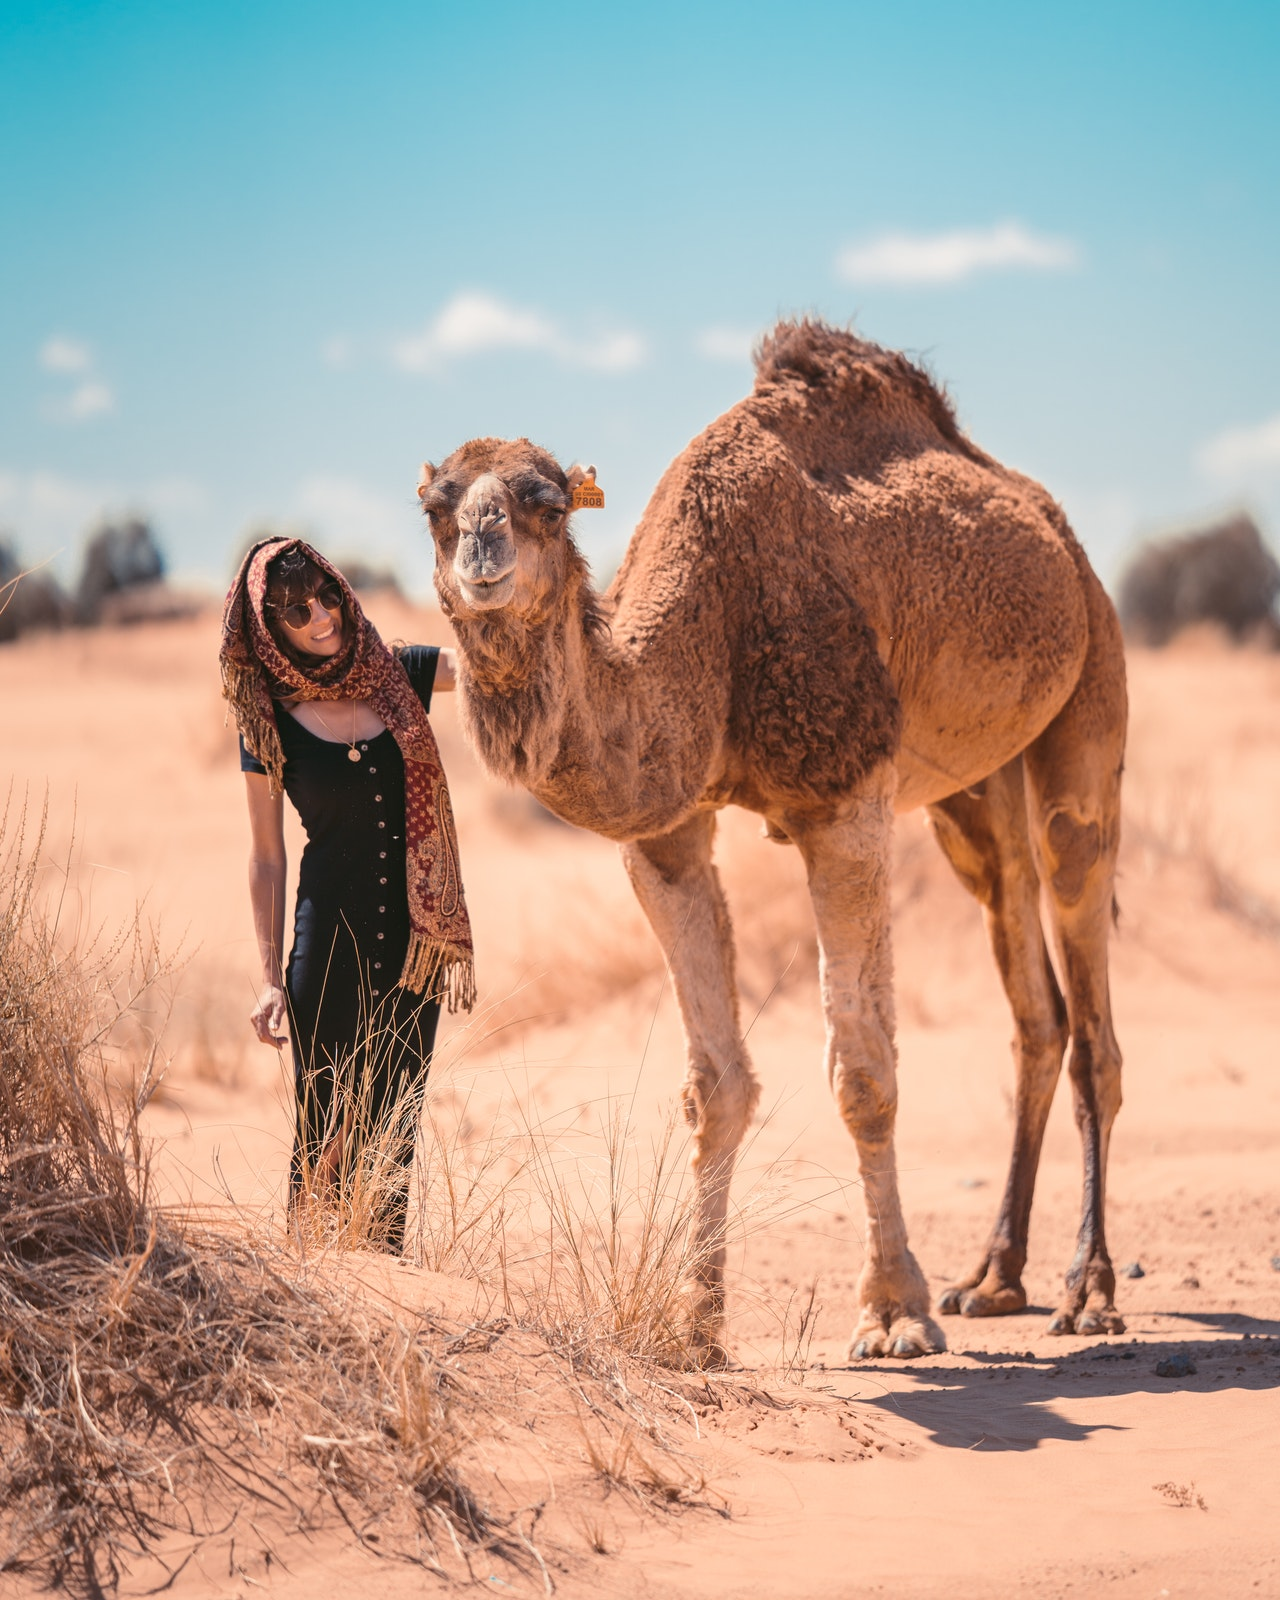 Camel and woman in Morocco